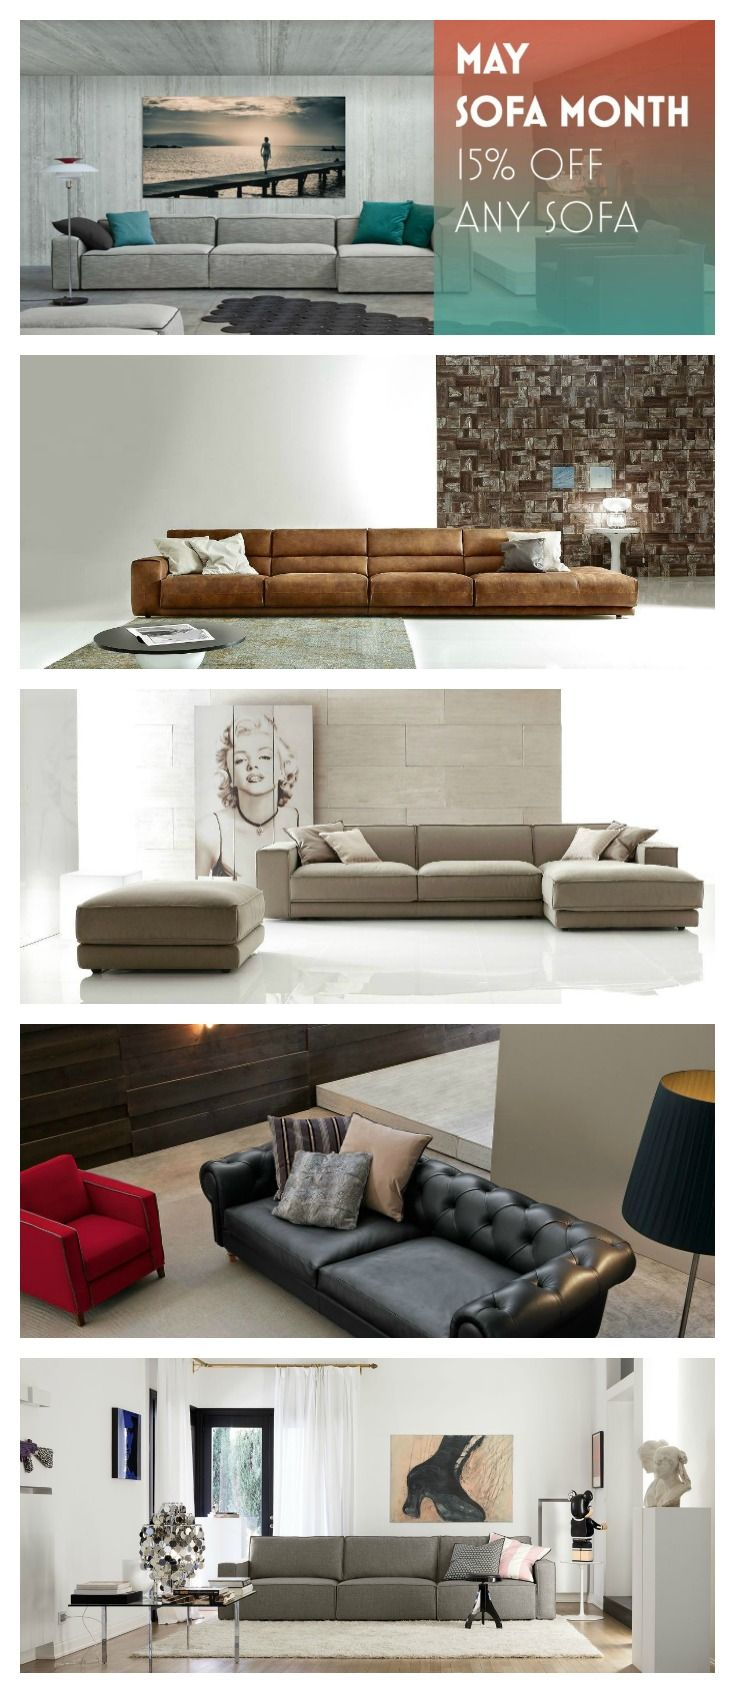 Beautiful Sofa Sale Happening Now At #Valitalia! 15% Off The Sofa Of Your Choice